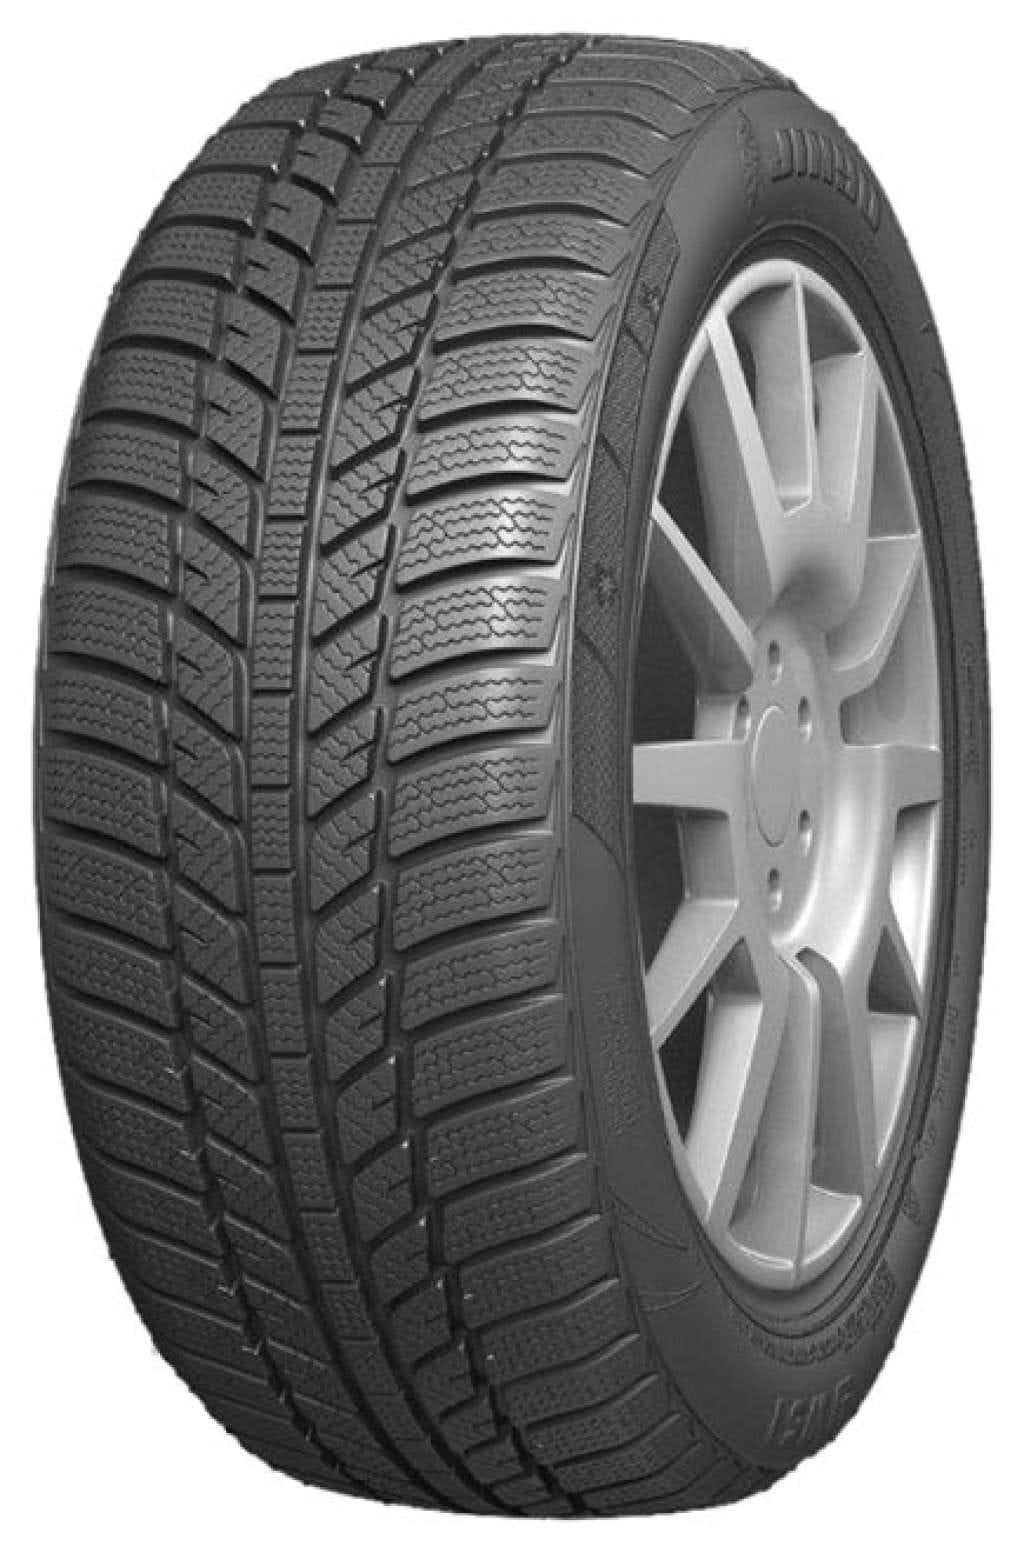 Gomme Nuove Jinyu Tyres 175/70 R13 82T Winter YW51 Radial M+S pneumatici nuovi Invernale